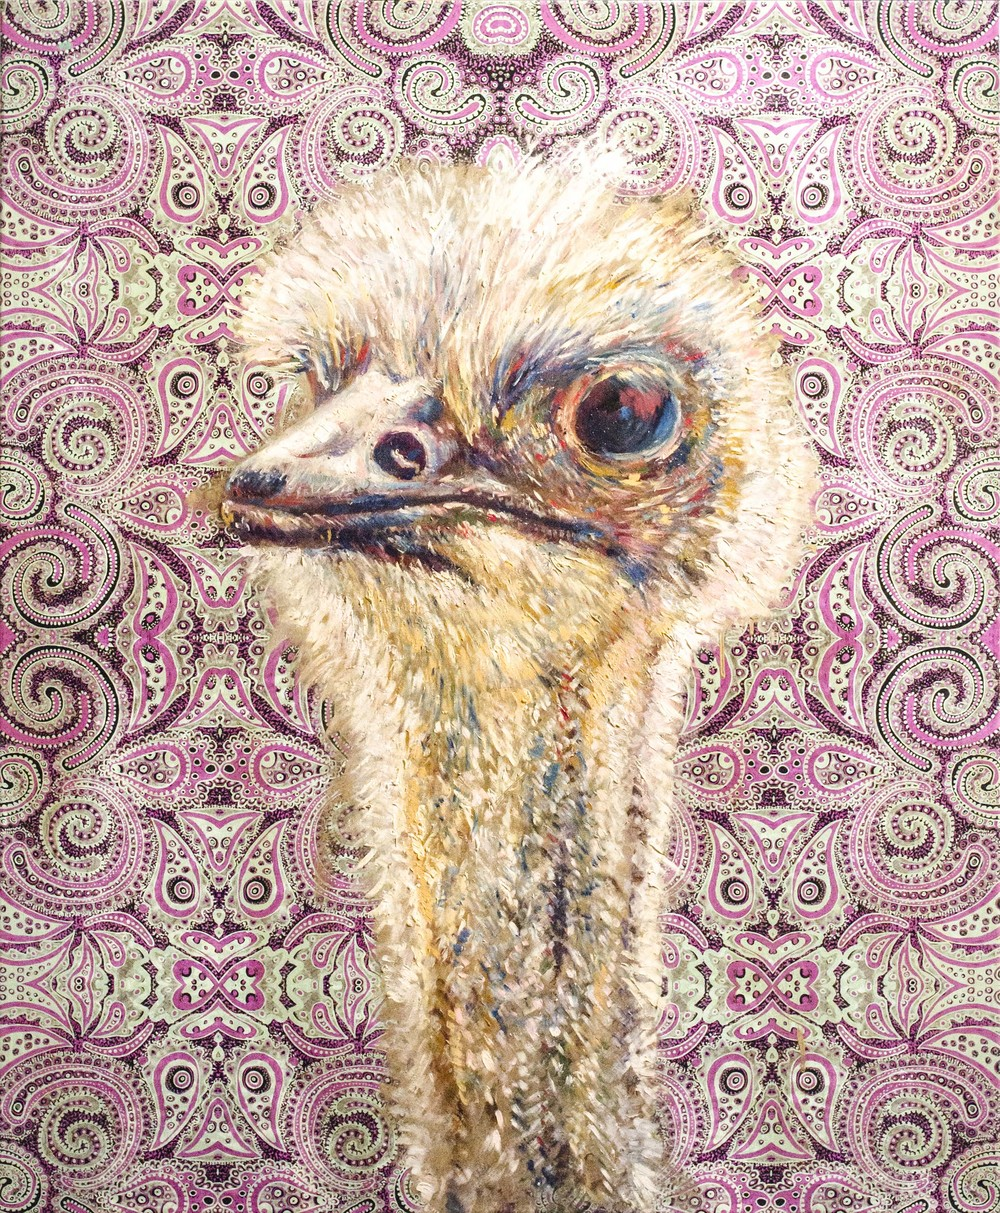 (The Holy) Ostrich, 2008